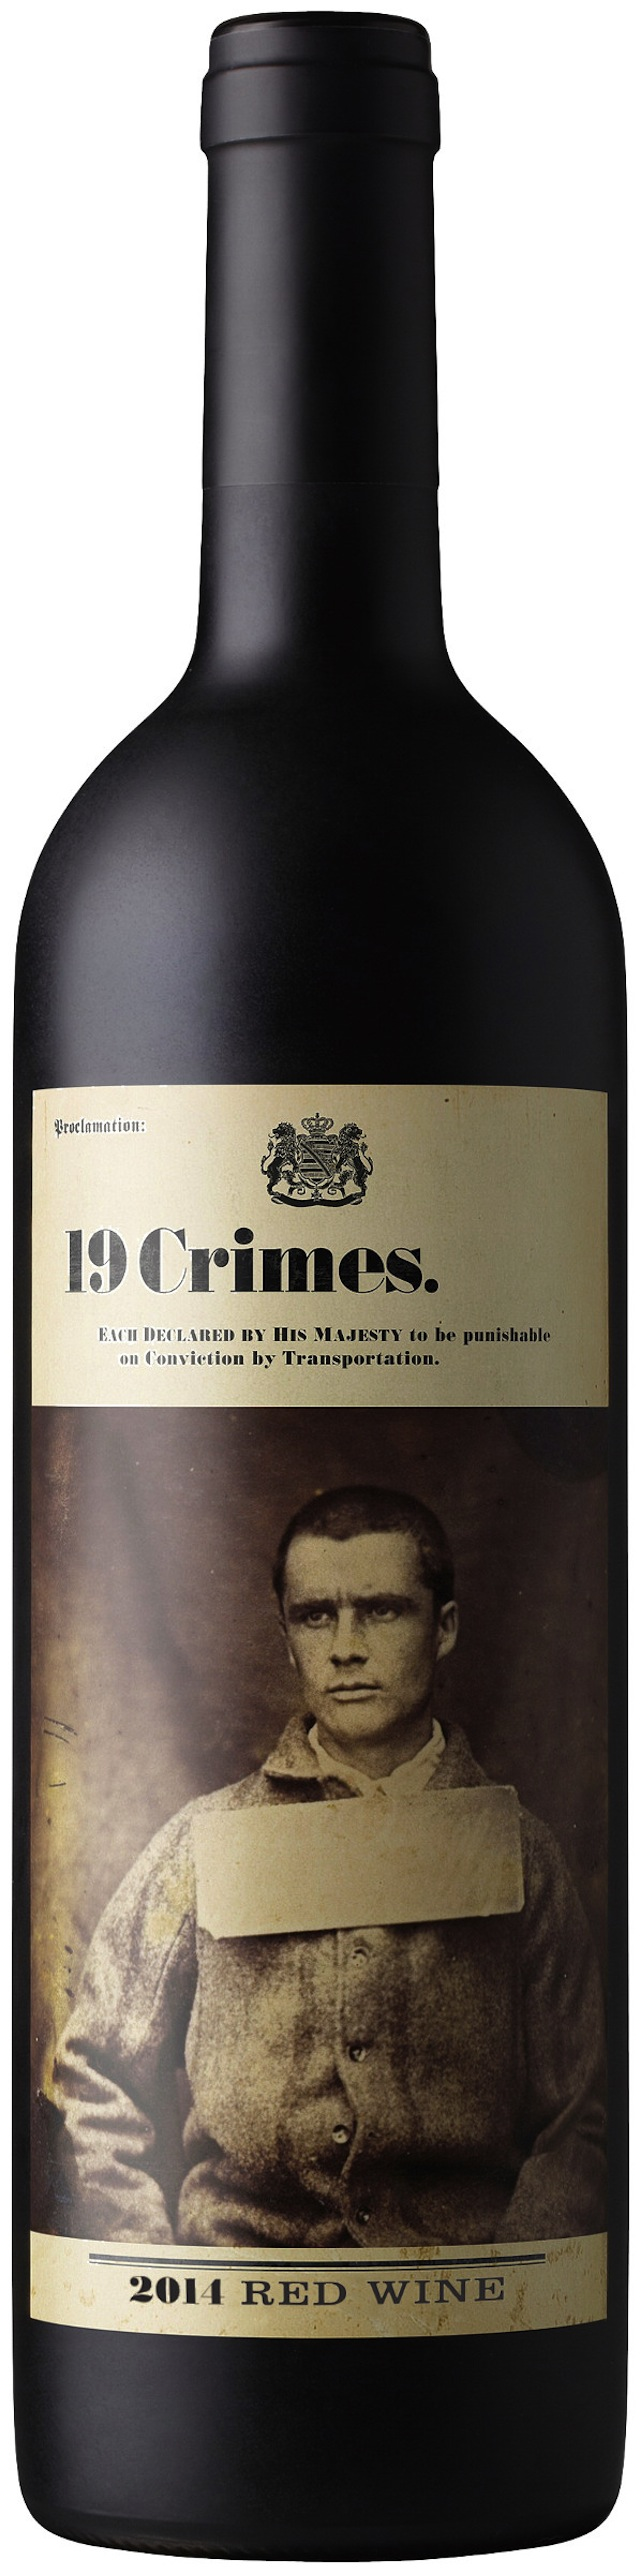 Treasury Wine Estates' 19 Crimes brand focuses on story and has helped stoke interest in Australian wine among millennials.